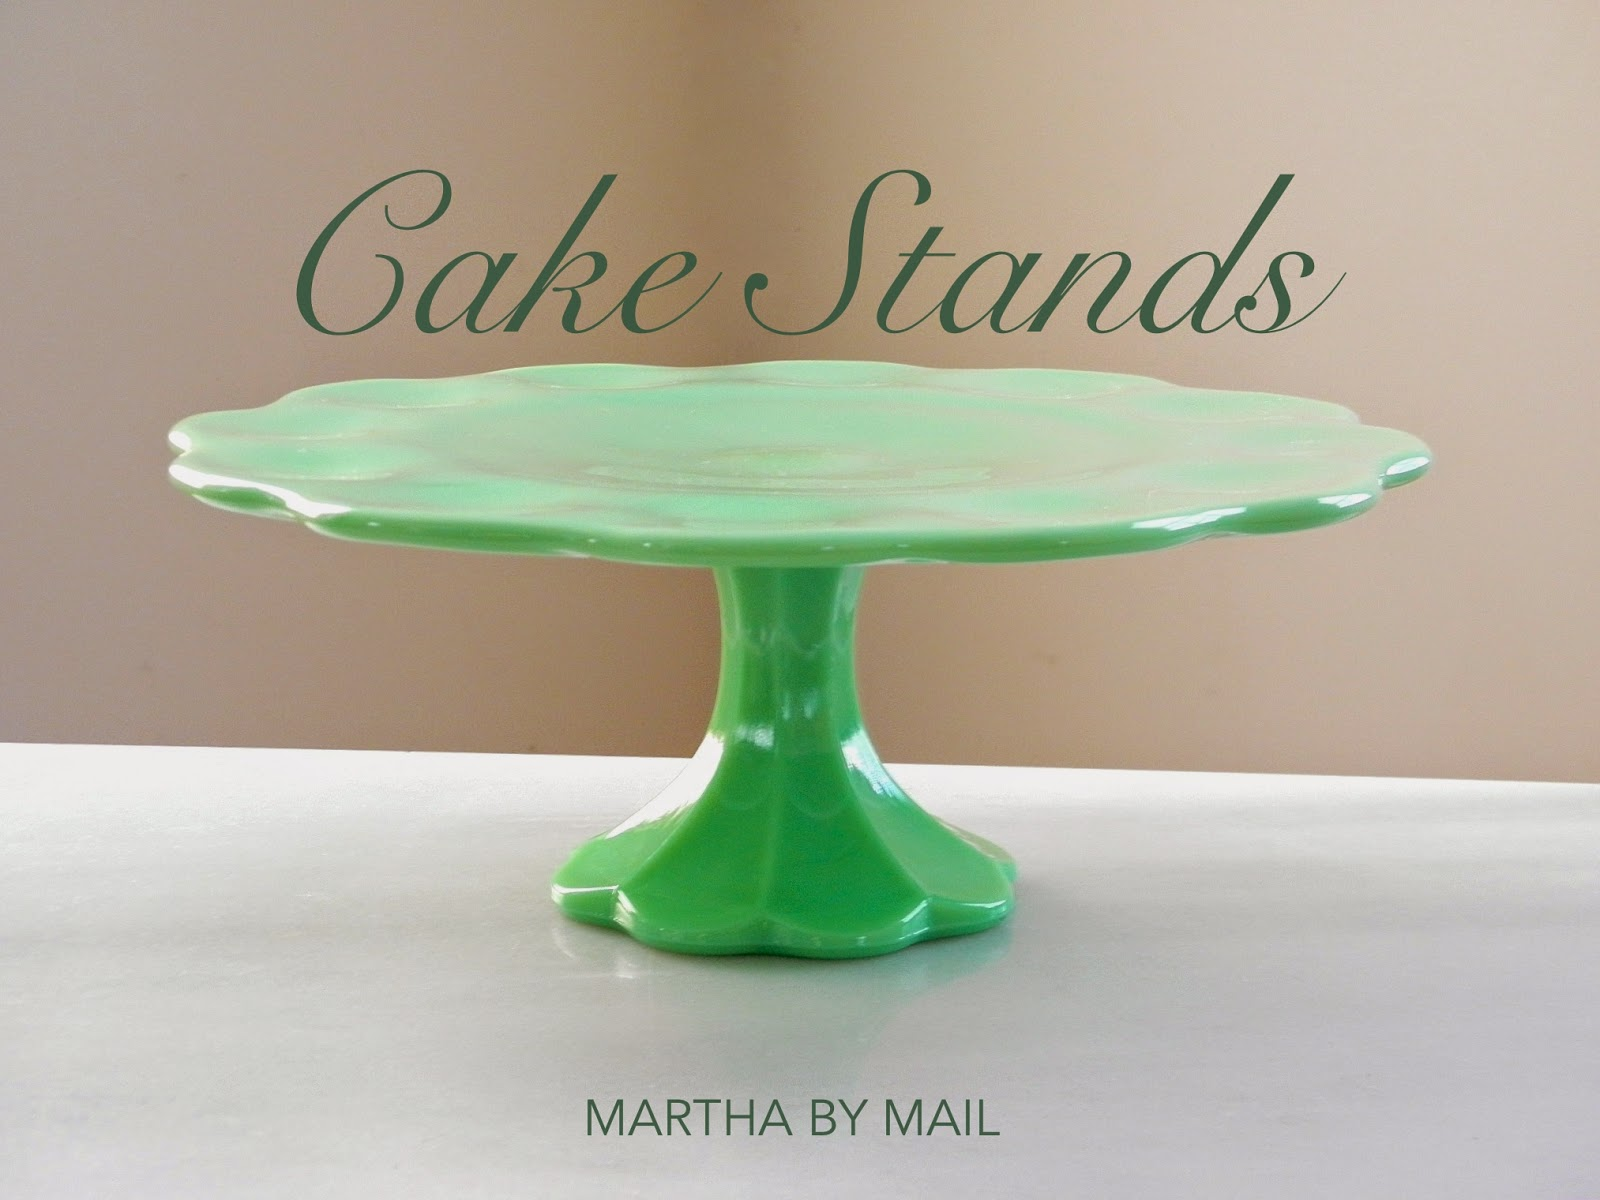 The Grape Leaf Plates are among the lightest in color while the Scalloped Cake Stand runs on the darker side. As a collector of this glassware ... & Good Things by David: Marthau0027s Green Glass